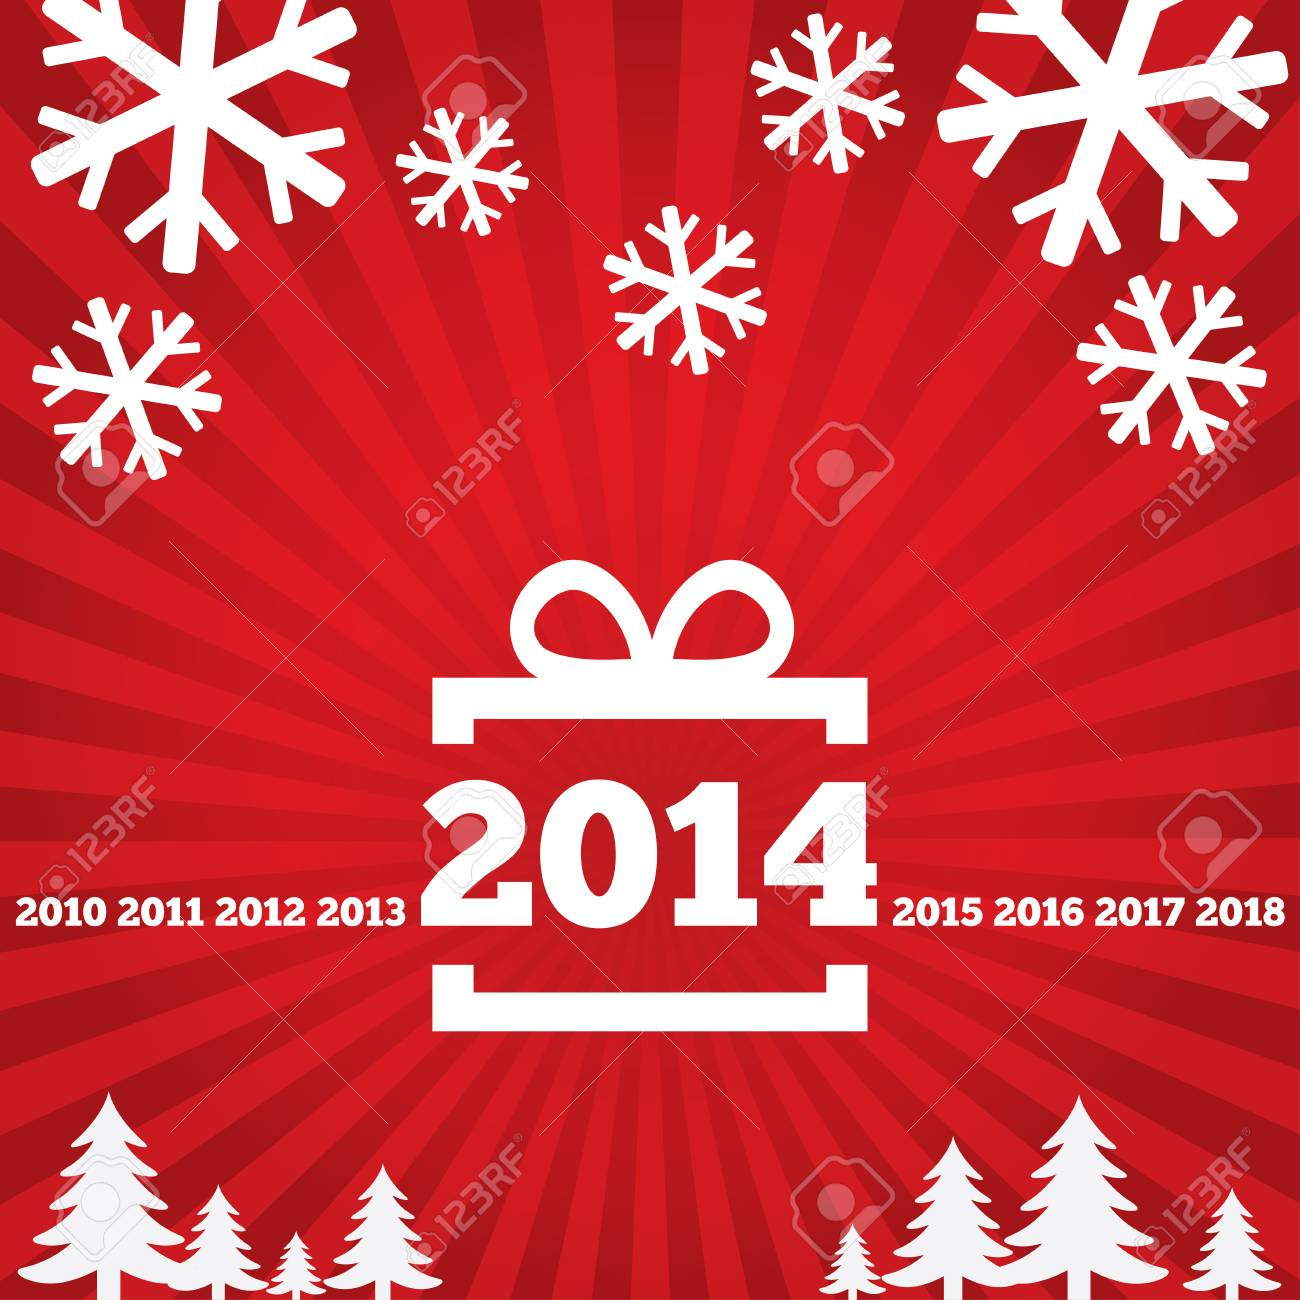 Happy New Year greeting card with flat icons, 2014. Christmas gift, tree, snowflake. Stock Photo - 23801167